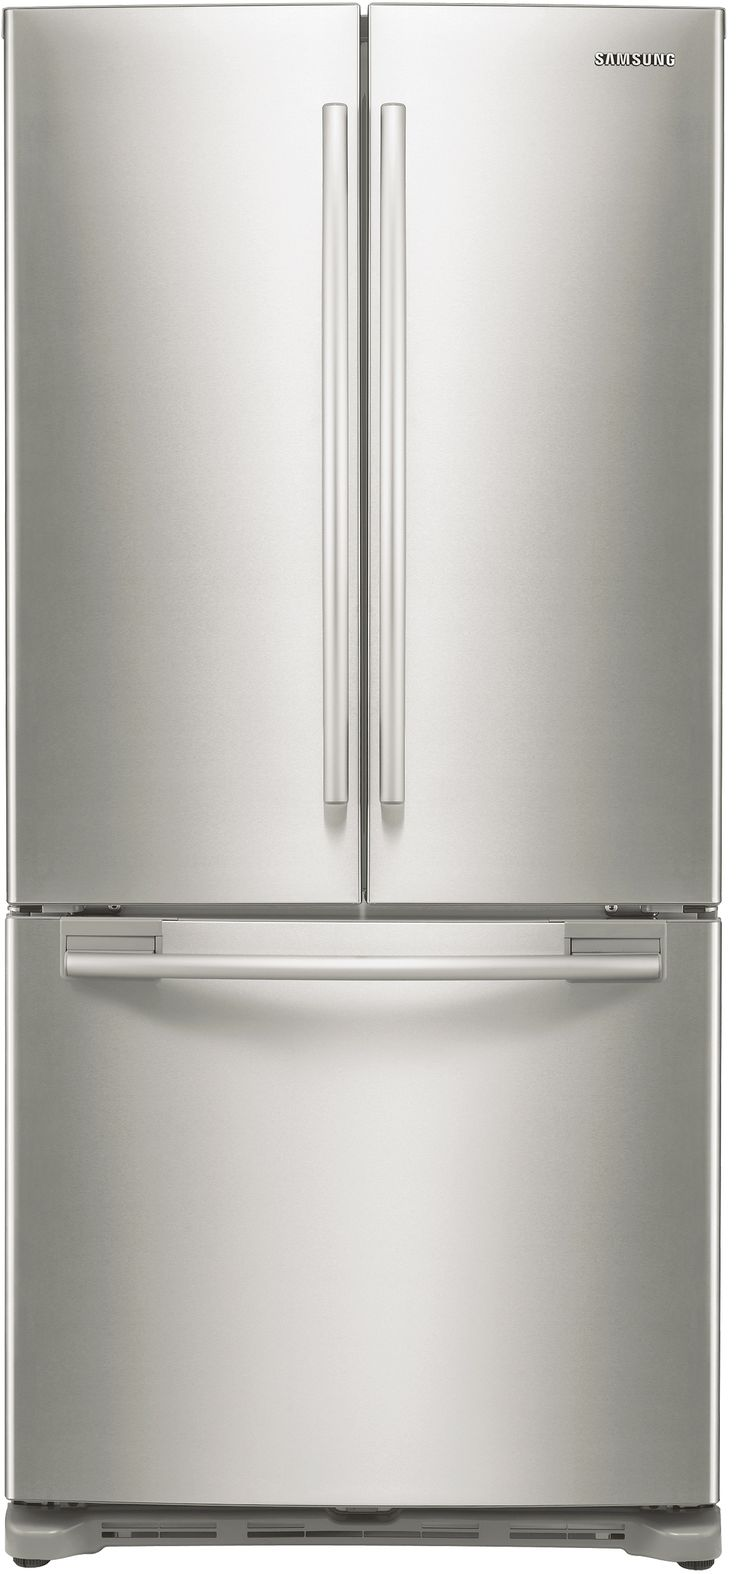 This stylish counter-depth 3-door French door refrigerator provides a built-in look, yet offers 18 cubic feet of space with lots of flexibility for food storage. Additionally, it features an automatic filtered ice maker, as well as our Twin Cooling System to help keep food fresher for longer.